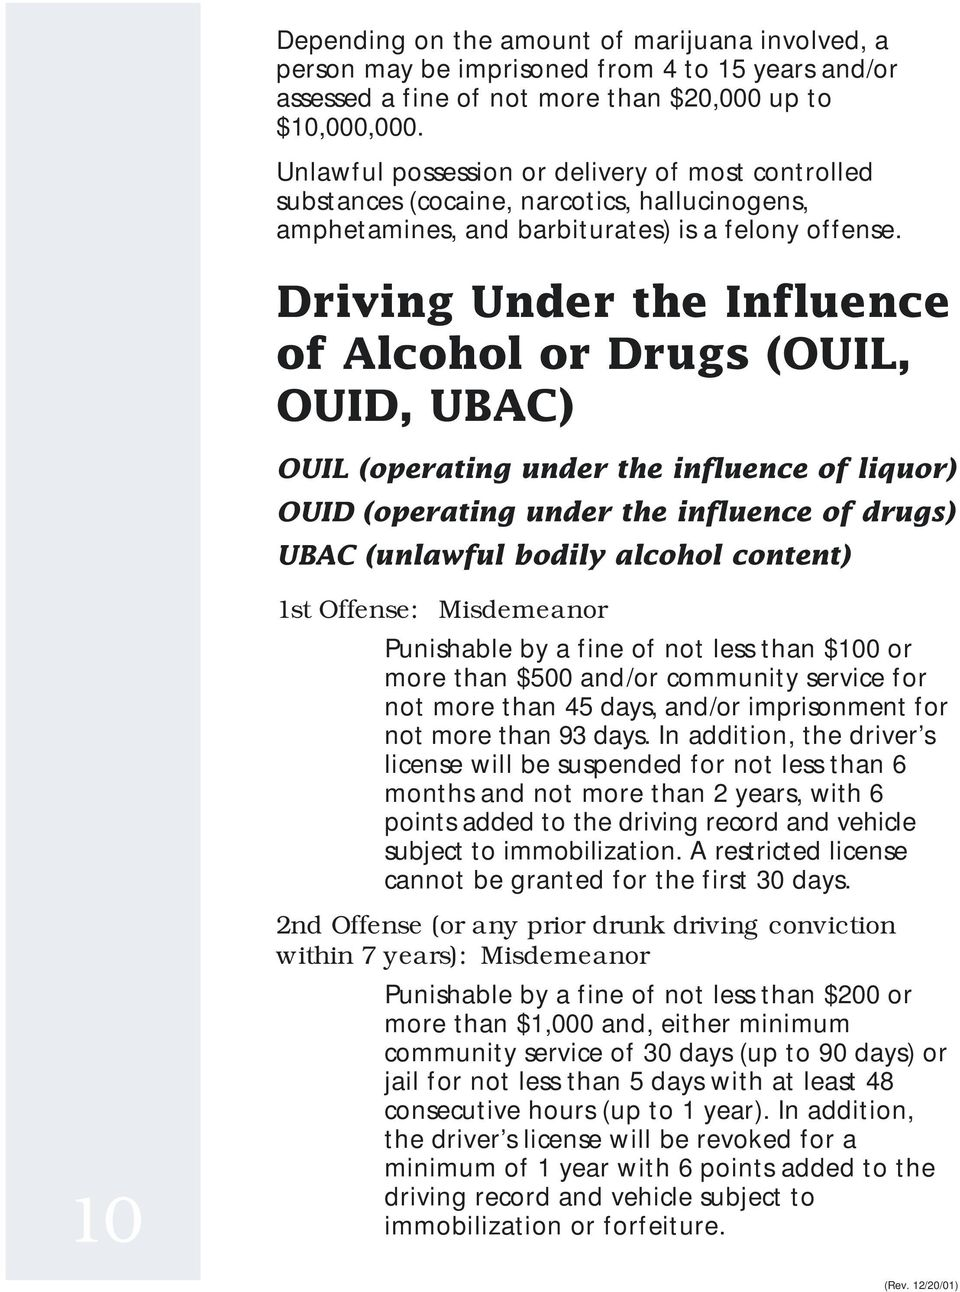 Driving Under the Influence of Alcohol or Drugs (OUIL, OUID, UBAC) OUIL (operating under the influence of liquor) OUID (operating under the influence of drugs) UBAC (unlawful bodily alcohol content)